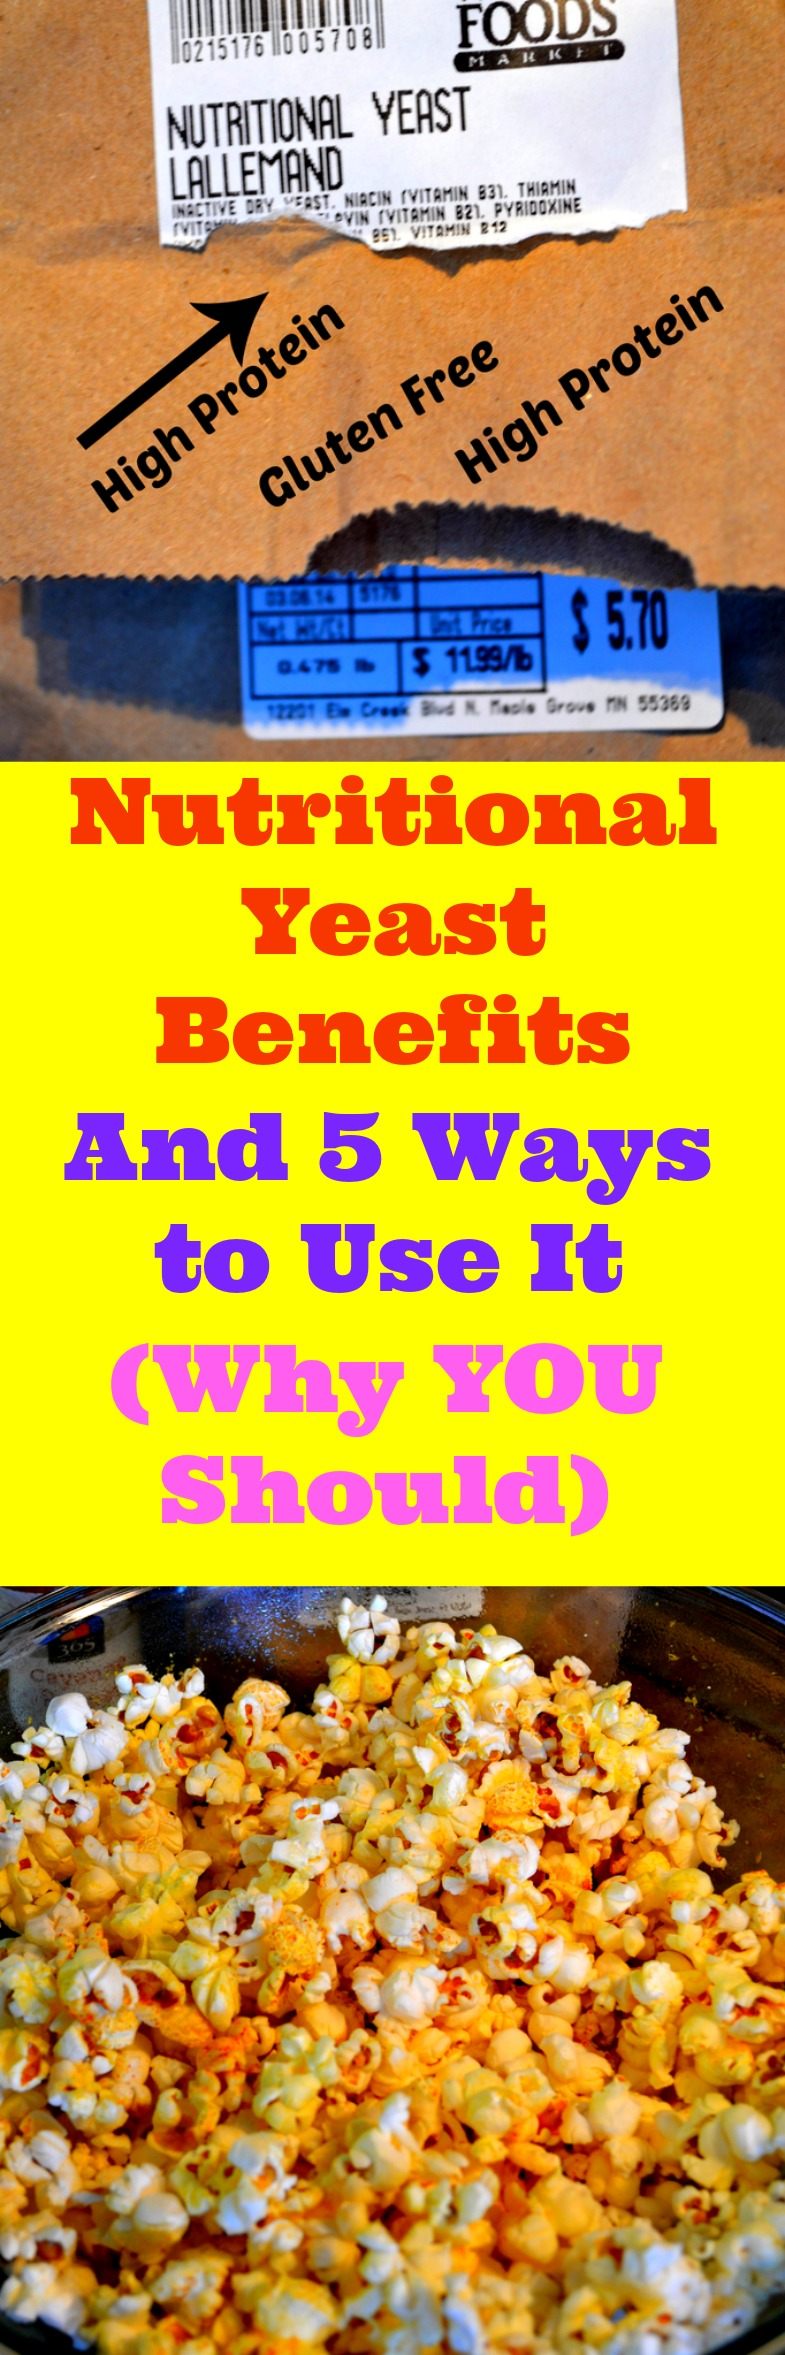 You must learn about Nutritional Yeast Benefits and what it can do for your health. Nutritional Yeast can replace Parmesan cheese in a pinch and tastes very similar. Surprisingly high in protein with unexpected flavors. Certified Gluten-Free and now sold in most markets. Tastes great on popcorn, pizza, cauliflower, added into soup, is Vegan and vertually calorie free, making it great for weight loss.